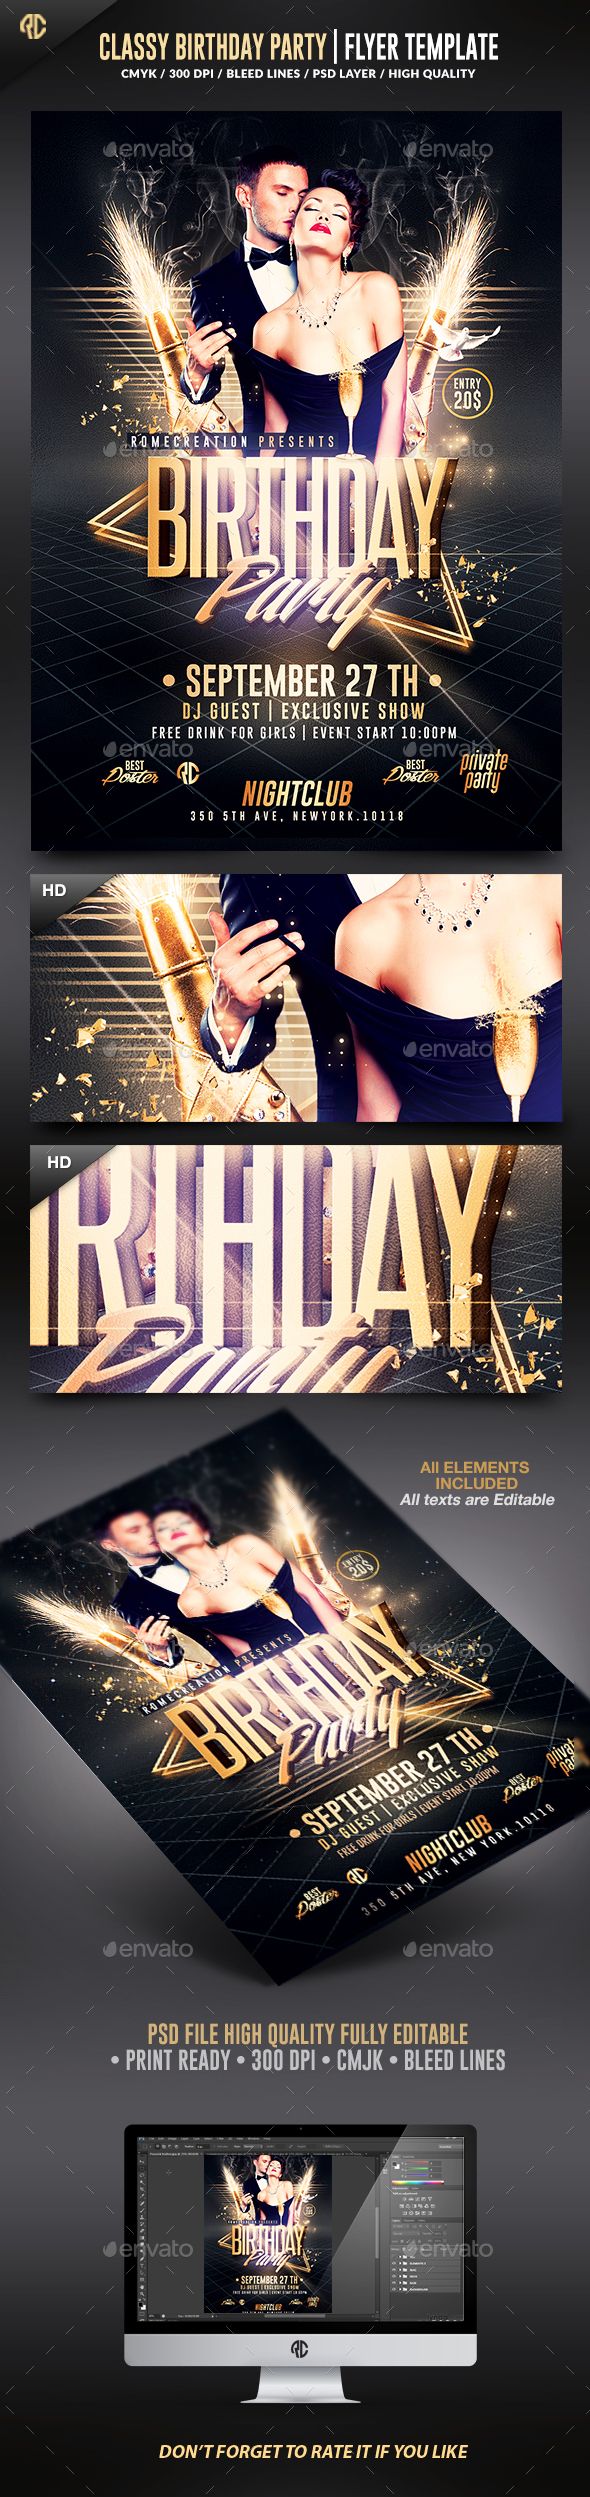 Classy Birthday Party | Psd Flyer Template - Clubs & Parties Events